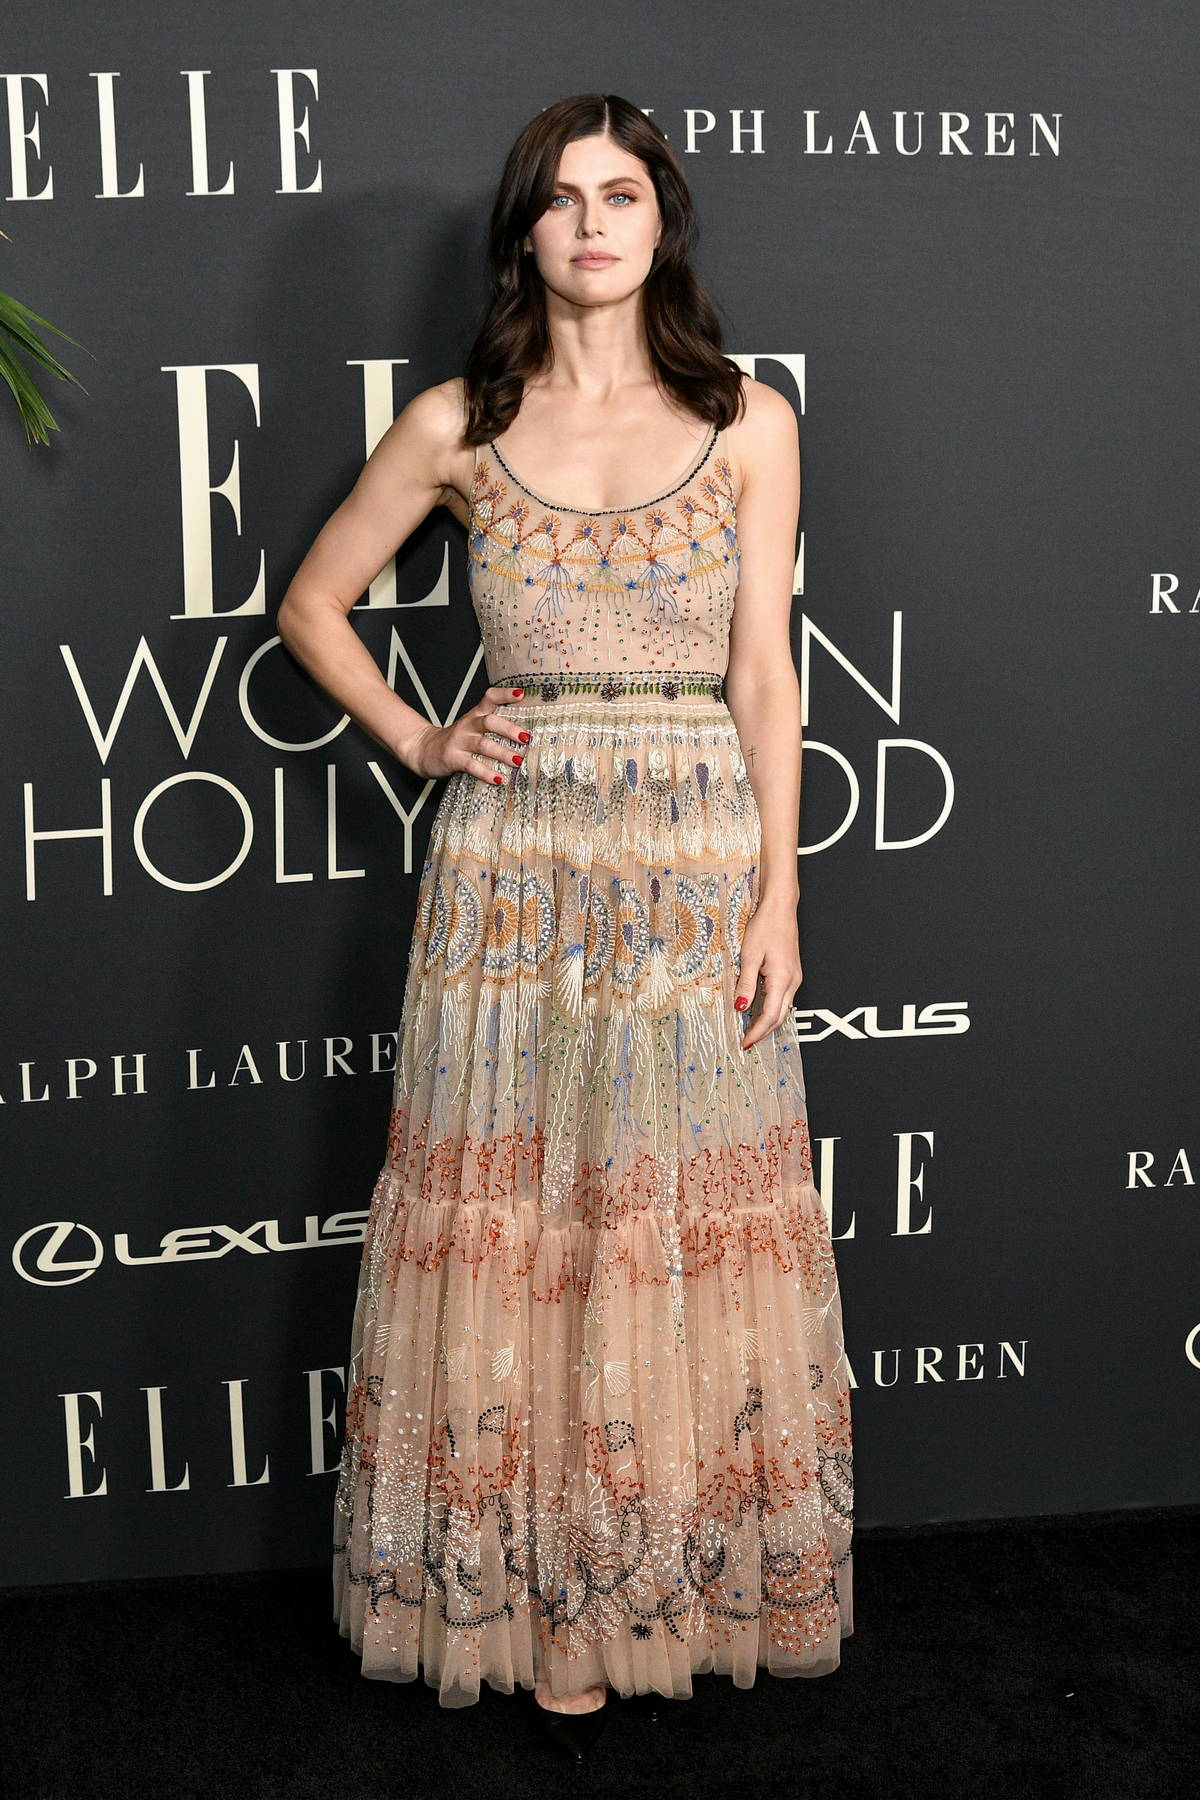 Alexandra Daddario attends ELLE's 27th Annual Women In Hollywood Celebration in Los Angeles